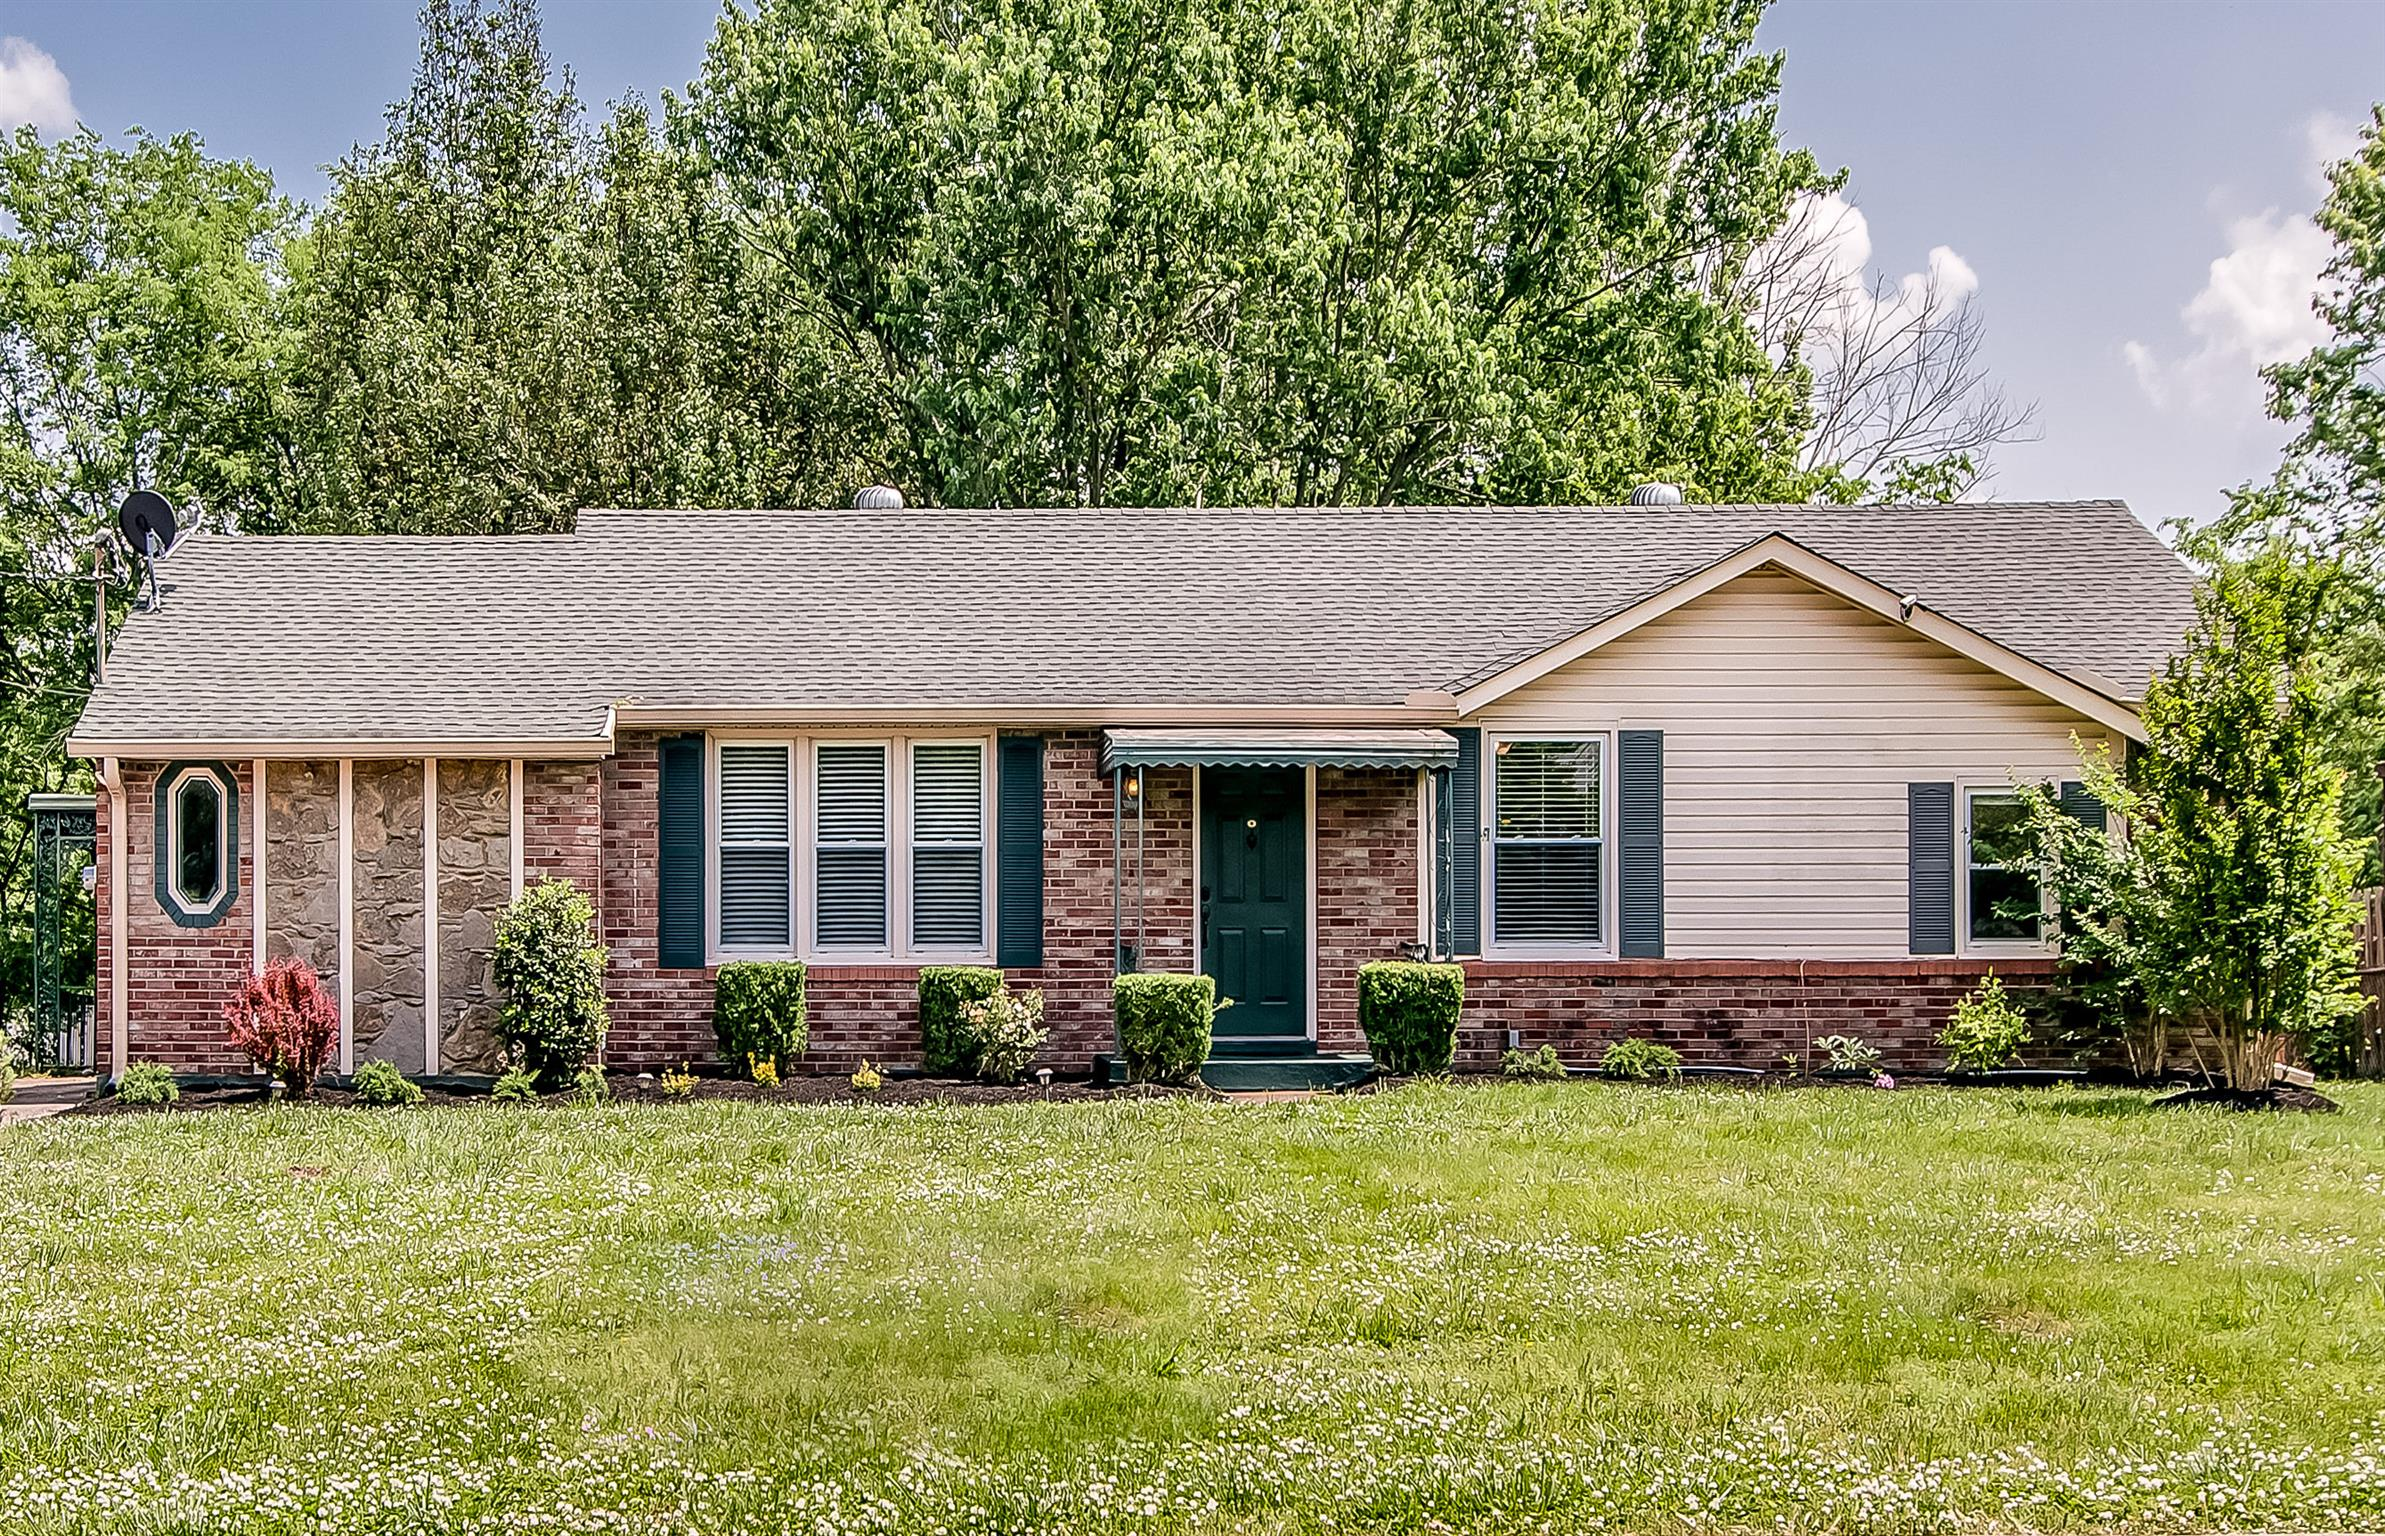 410 Gates Rd, Goodlettsville in Davidson County County, TN 37072 Home for Sale